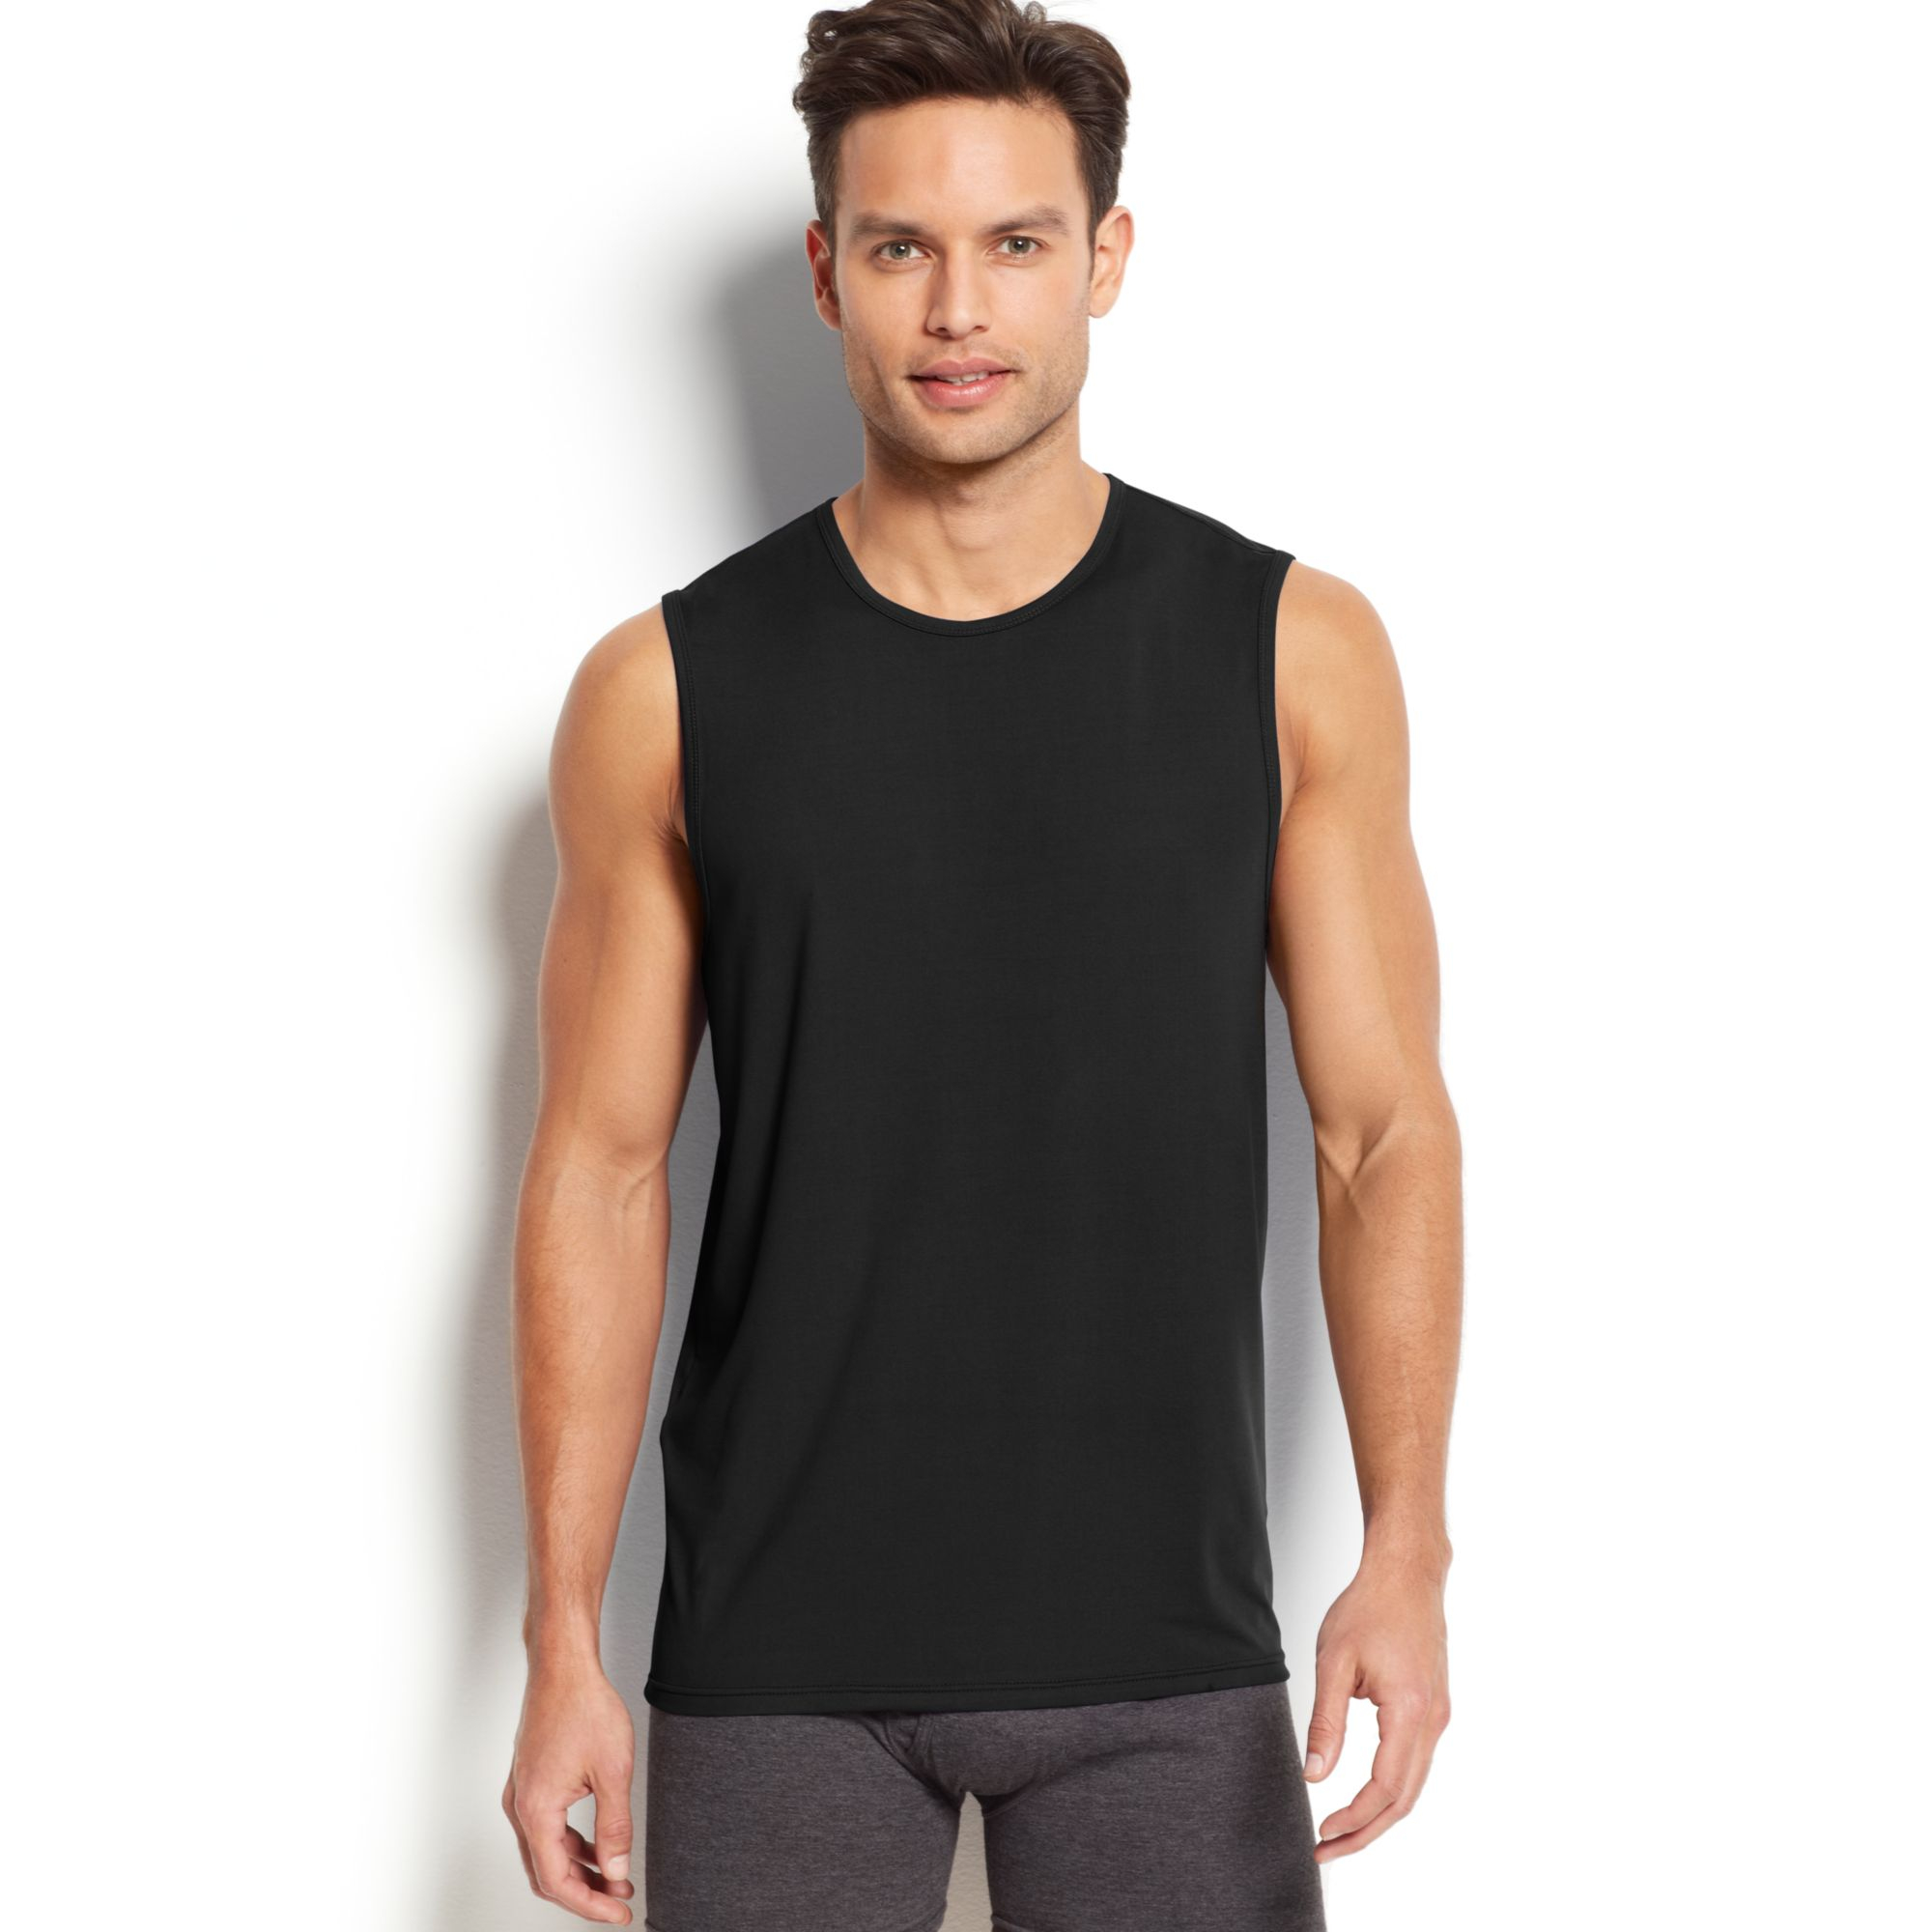 Shop Under Armour men's sleeveless t-shirts, tank tops, compression shirts, and muscle shirts to keep cool for your workout. FREE SHIPPING available in the US.